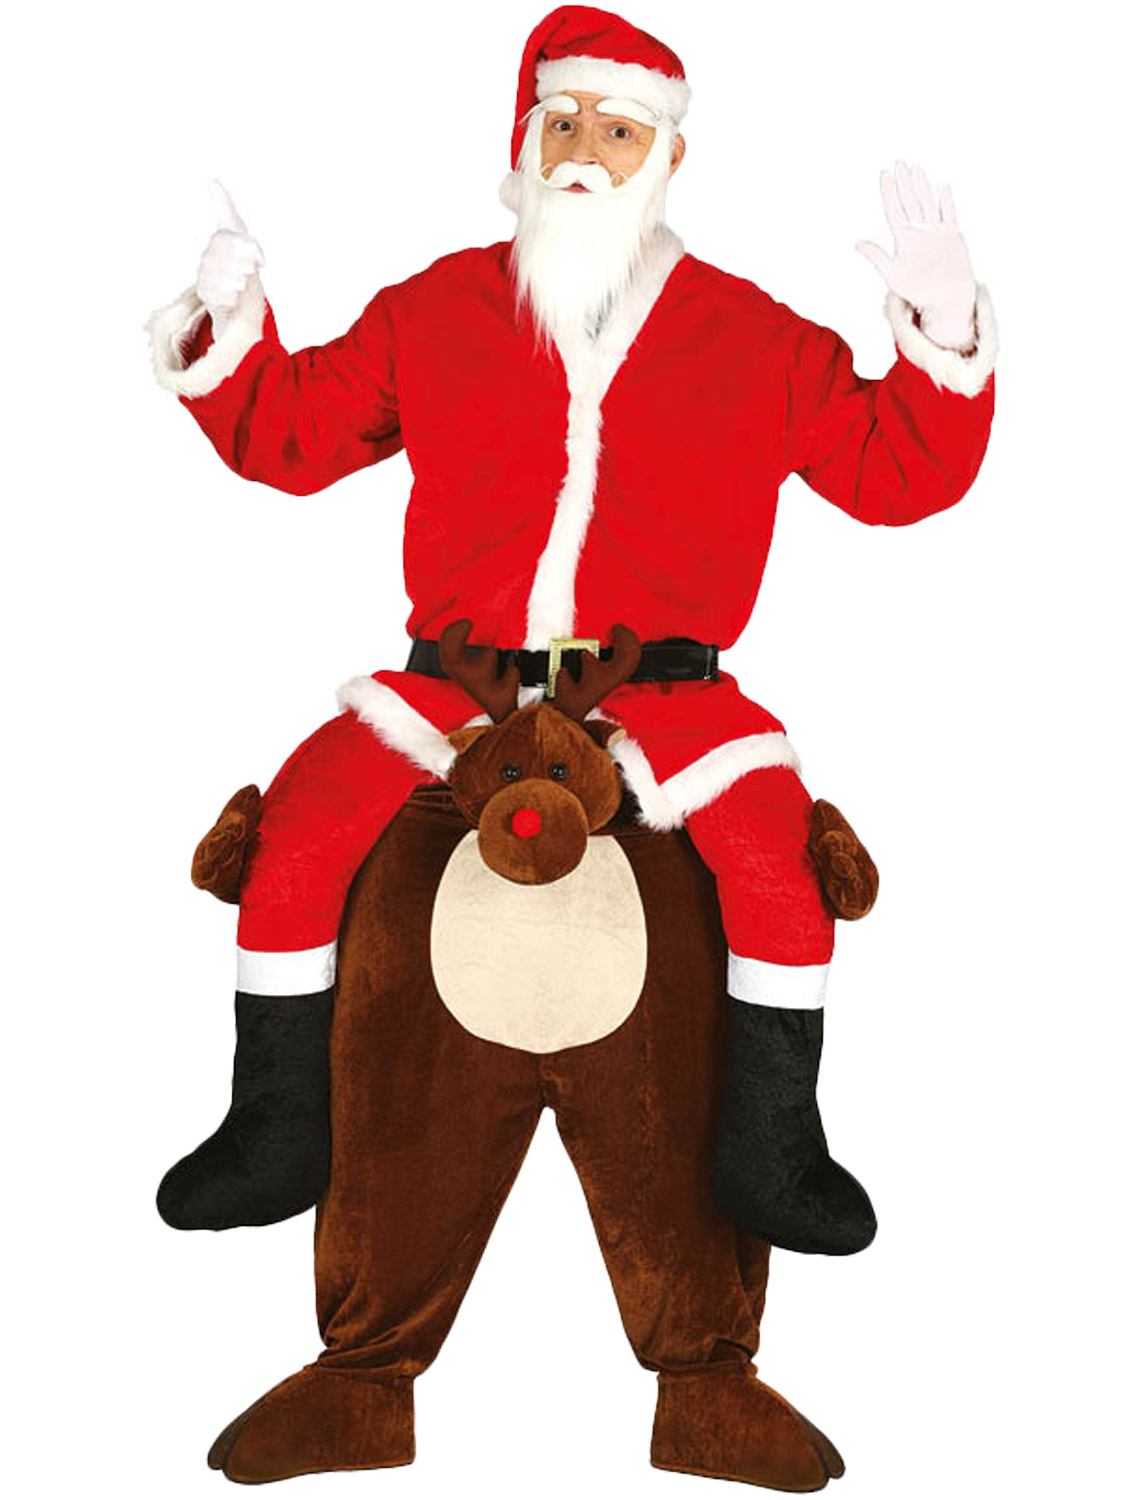 Christmas Fancy Dress Funny.Details About Adults Piggy Back Reindeer Costume Mens Santa Christmas Fancy Dress Funny Outfit